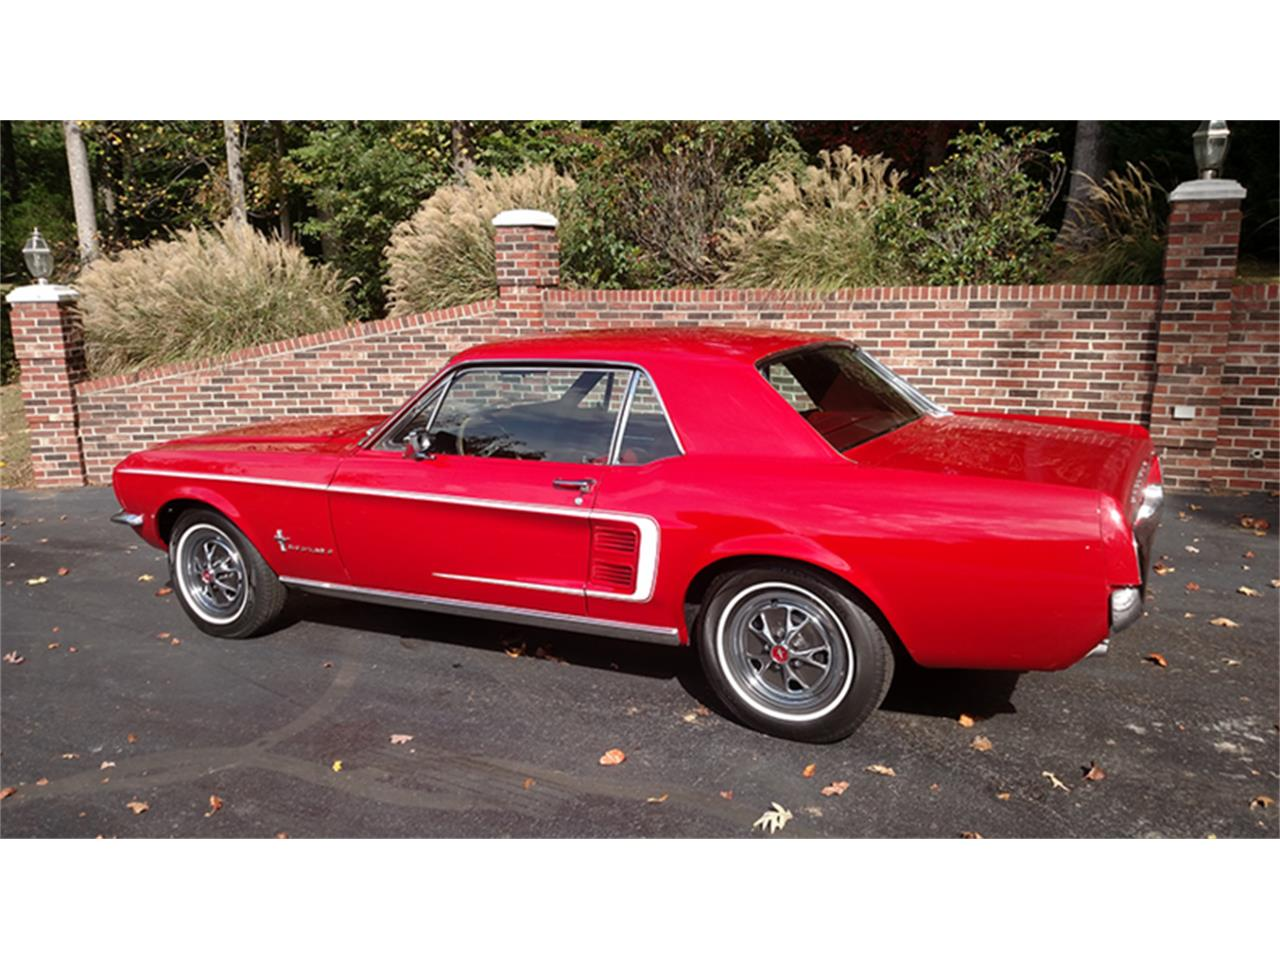 Large Picture of Classic 1967 Ford Mustang - $15,900.00 Offered by Old Town Automobile - M763